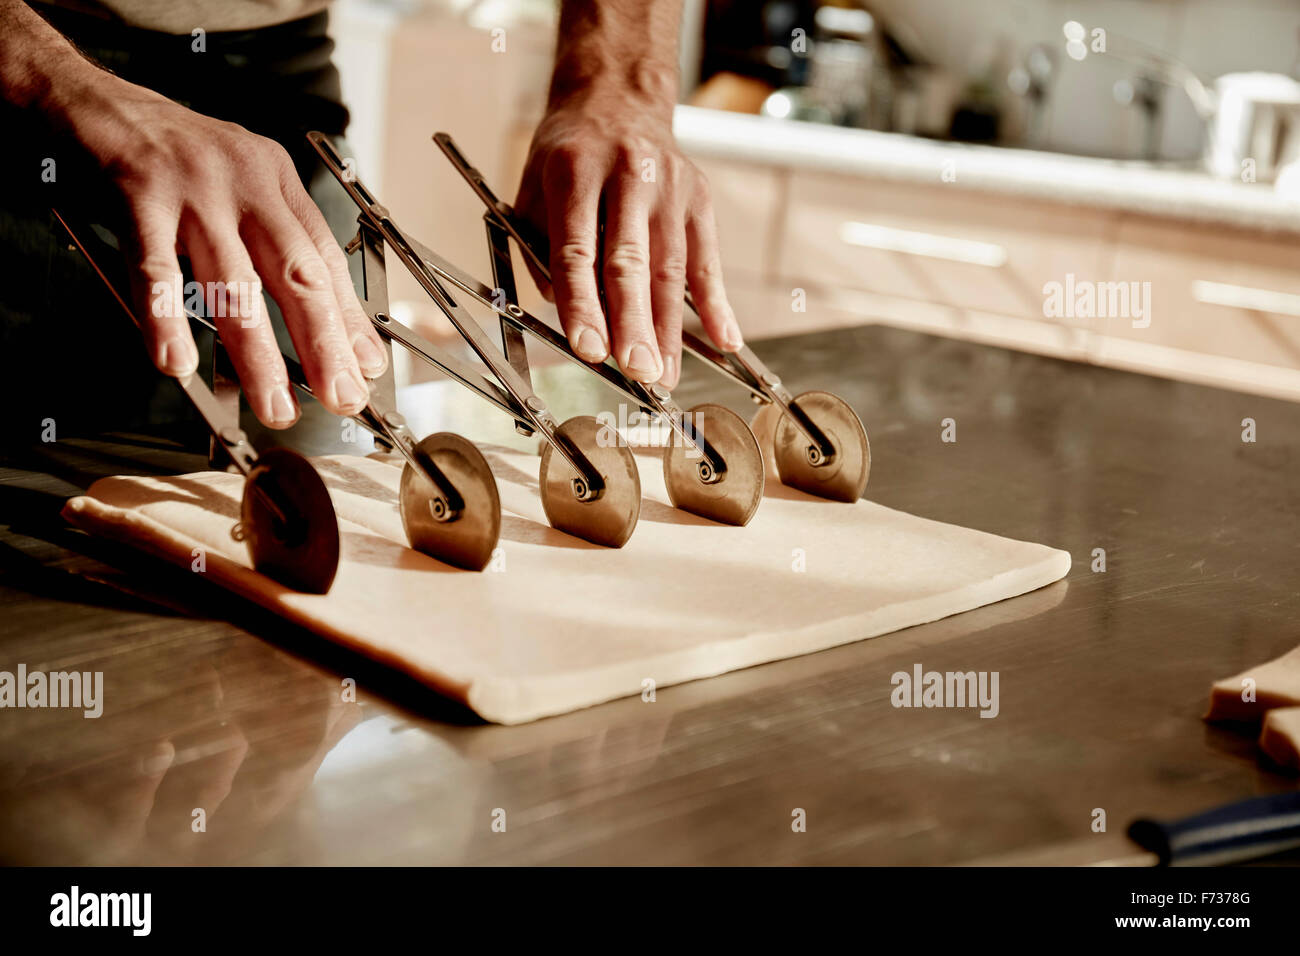 A baker working on a floured surface, dividing the prepared dough into squares using an expandable rotary dough - Stock Image